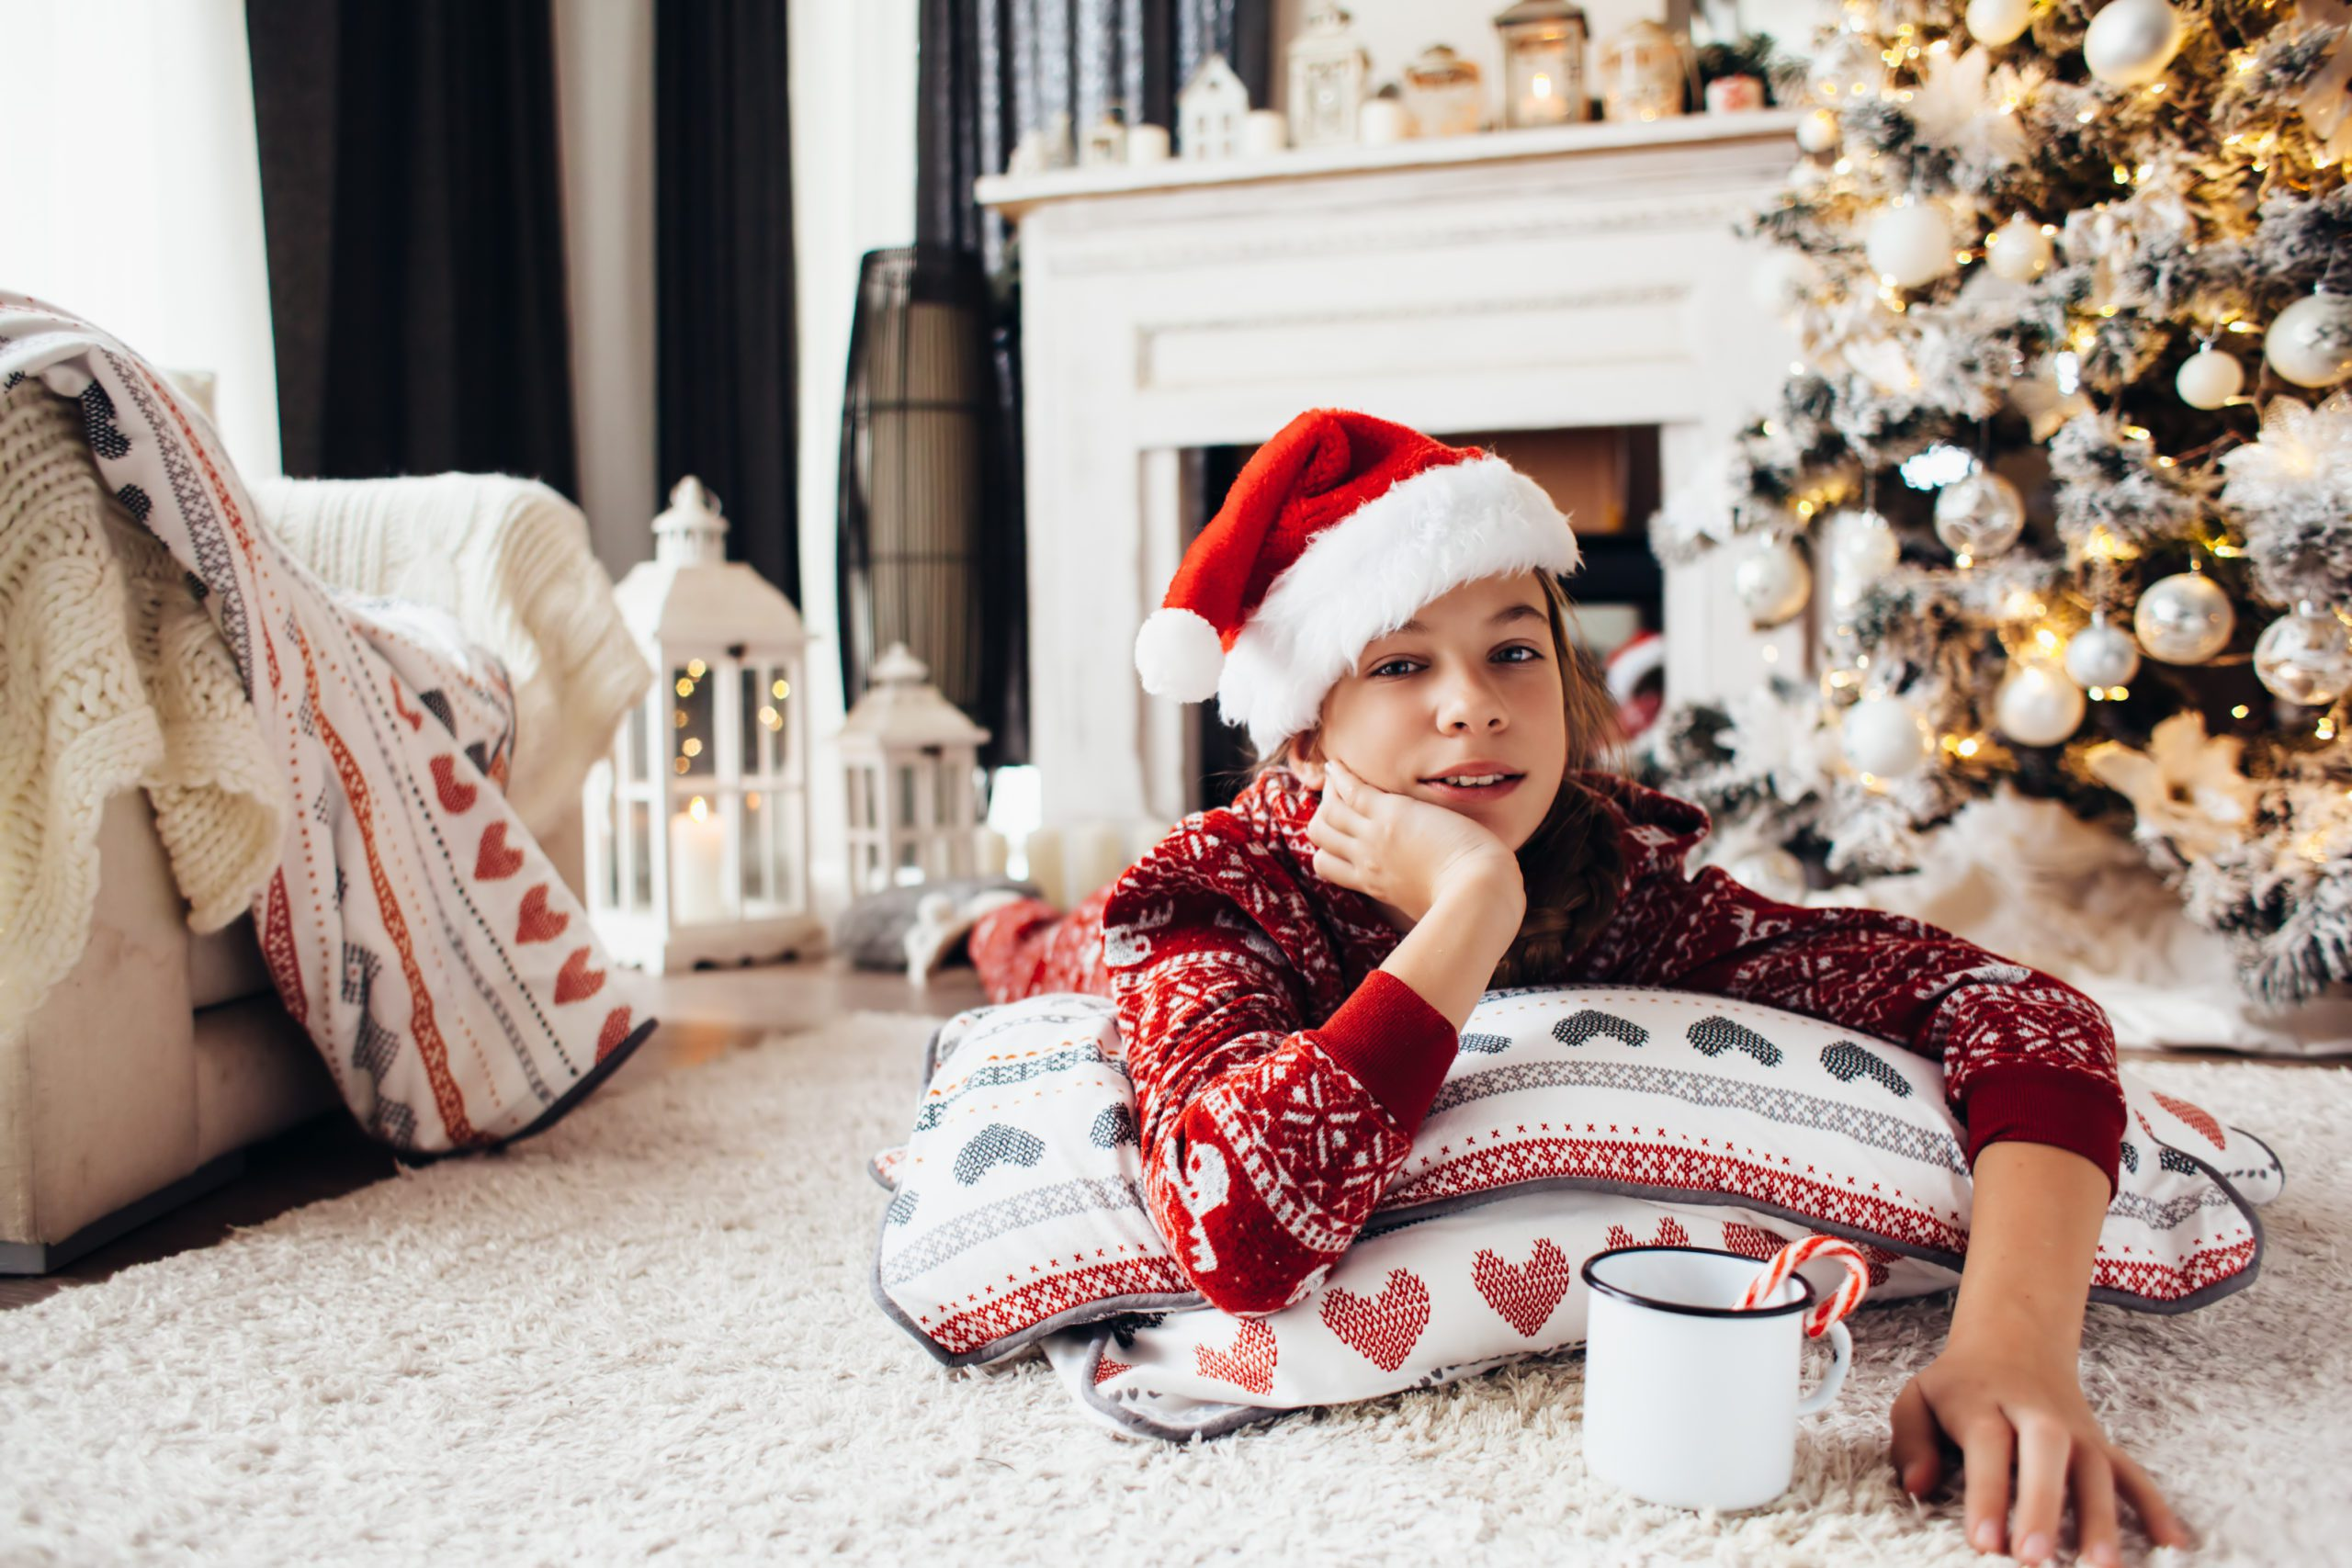 The holidays can be stressful for every, including children. Check out these tips to Help Your Kids Unwind During the Holidays #Christmas #Holidays #Winter #Parentingtips #relax